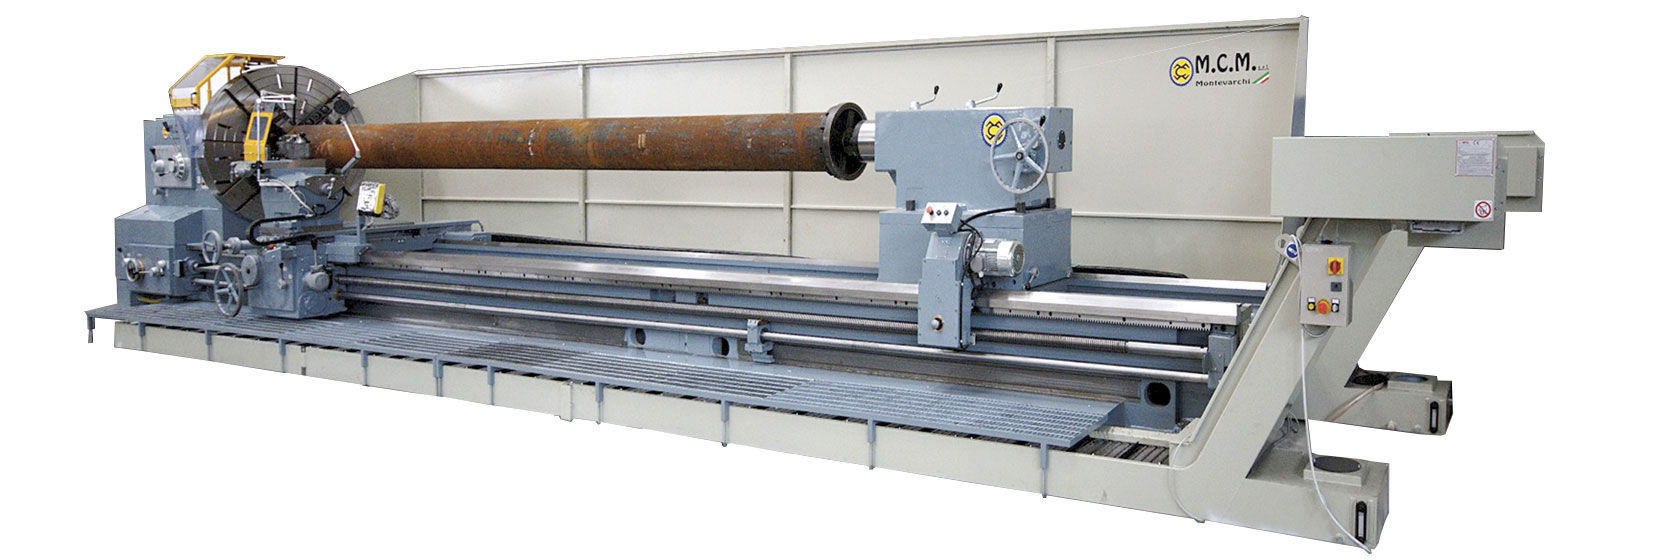 Conventional universal precision lathes TC HEAVY PLUS 1000